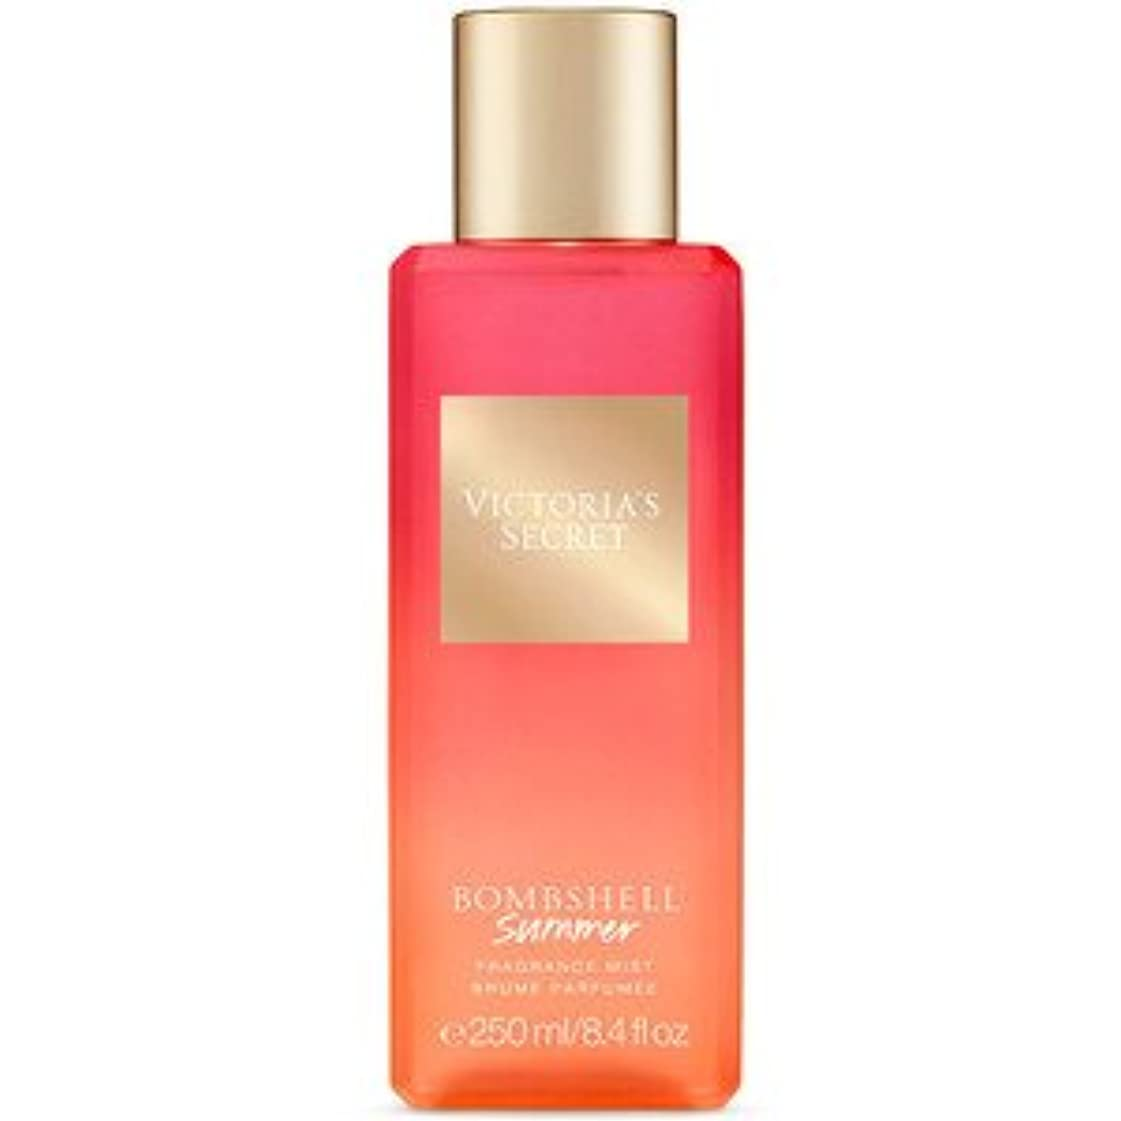 中間印象破壊するBombshell Summer (ボム シェル サマー) 8.4 oz (250ml) Fragrance Mist by Victoria Secret for Women